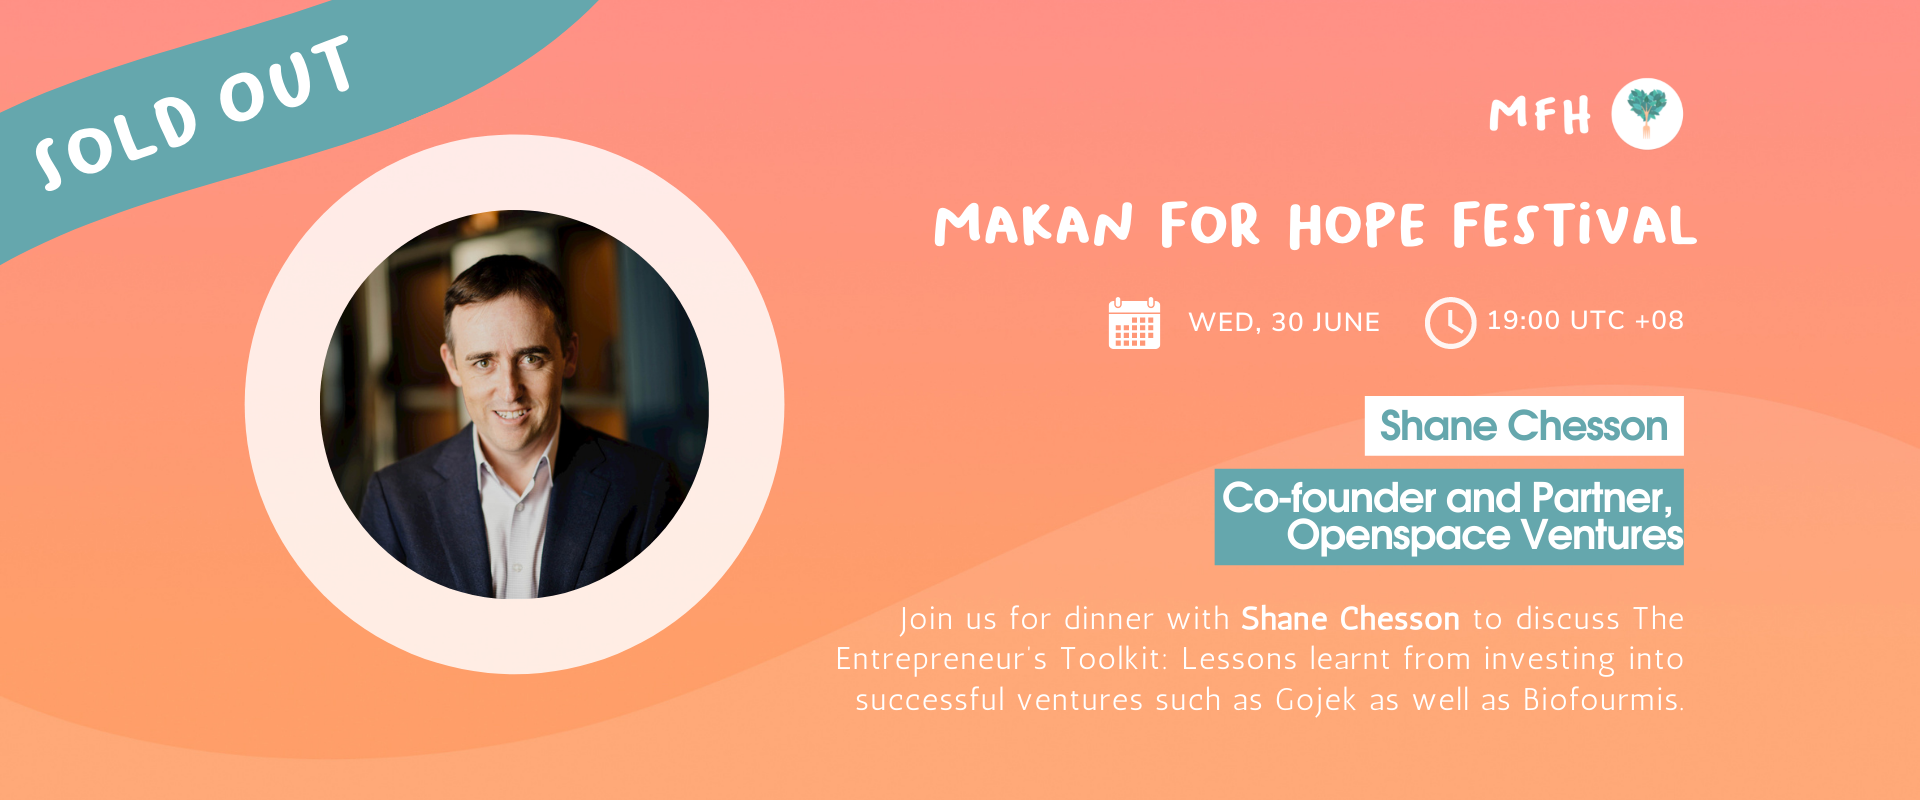 [SOLD OUT!] Shane Chesson - The Entrepreneur's Toolkit: Lessons learnt from investing into Successful Ventures such as Gojek and Biofourmis Banner Image